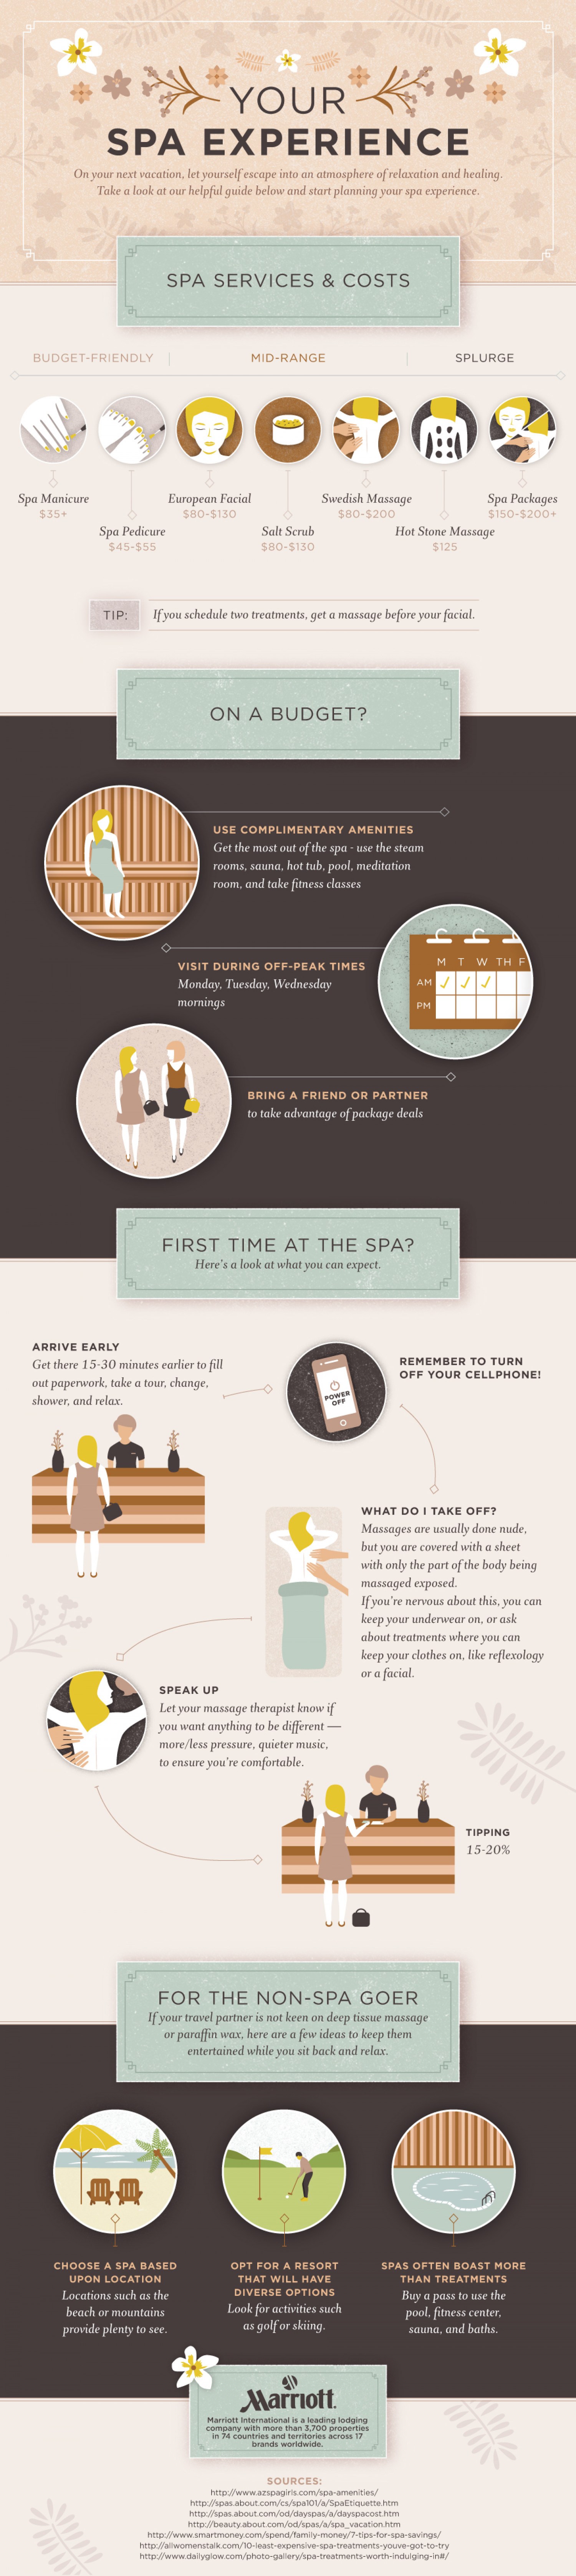 Your Spa Experience Infographic